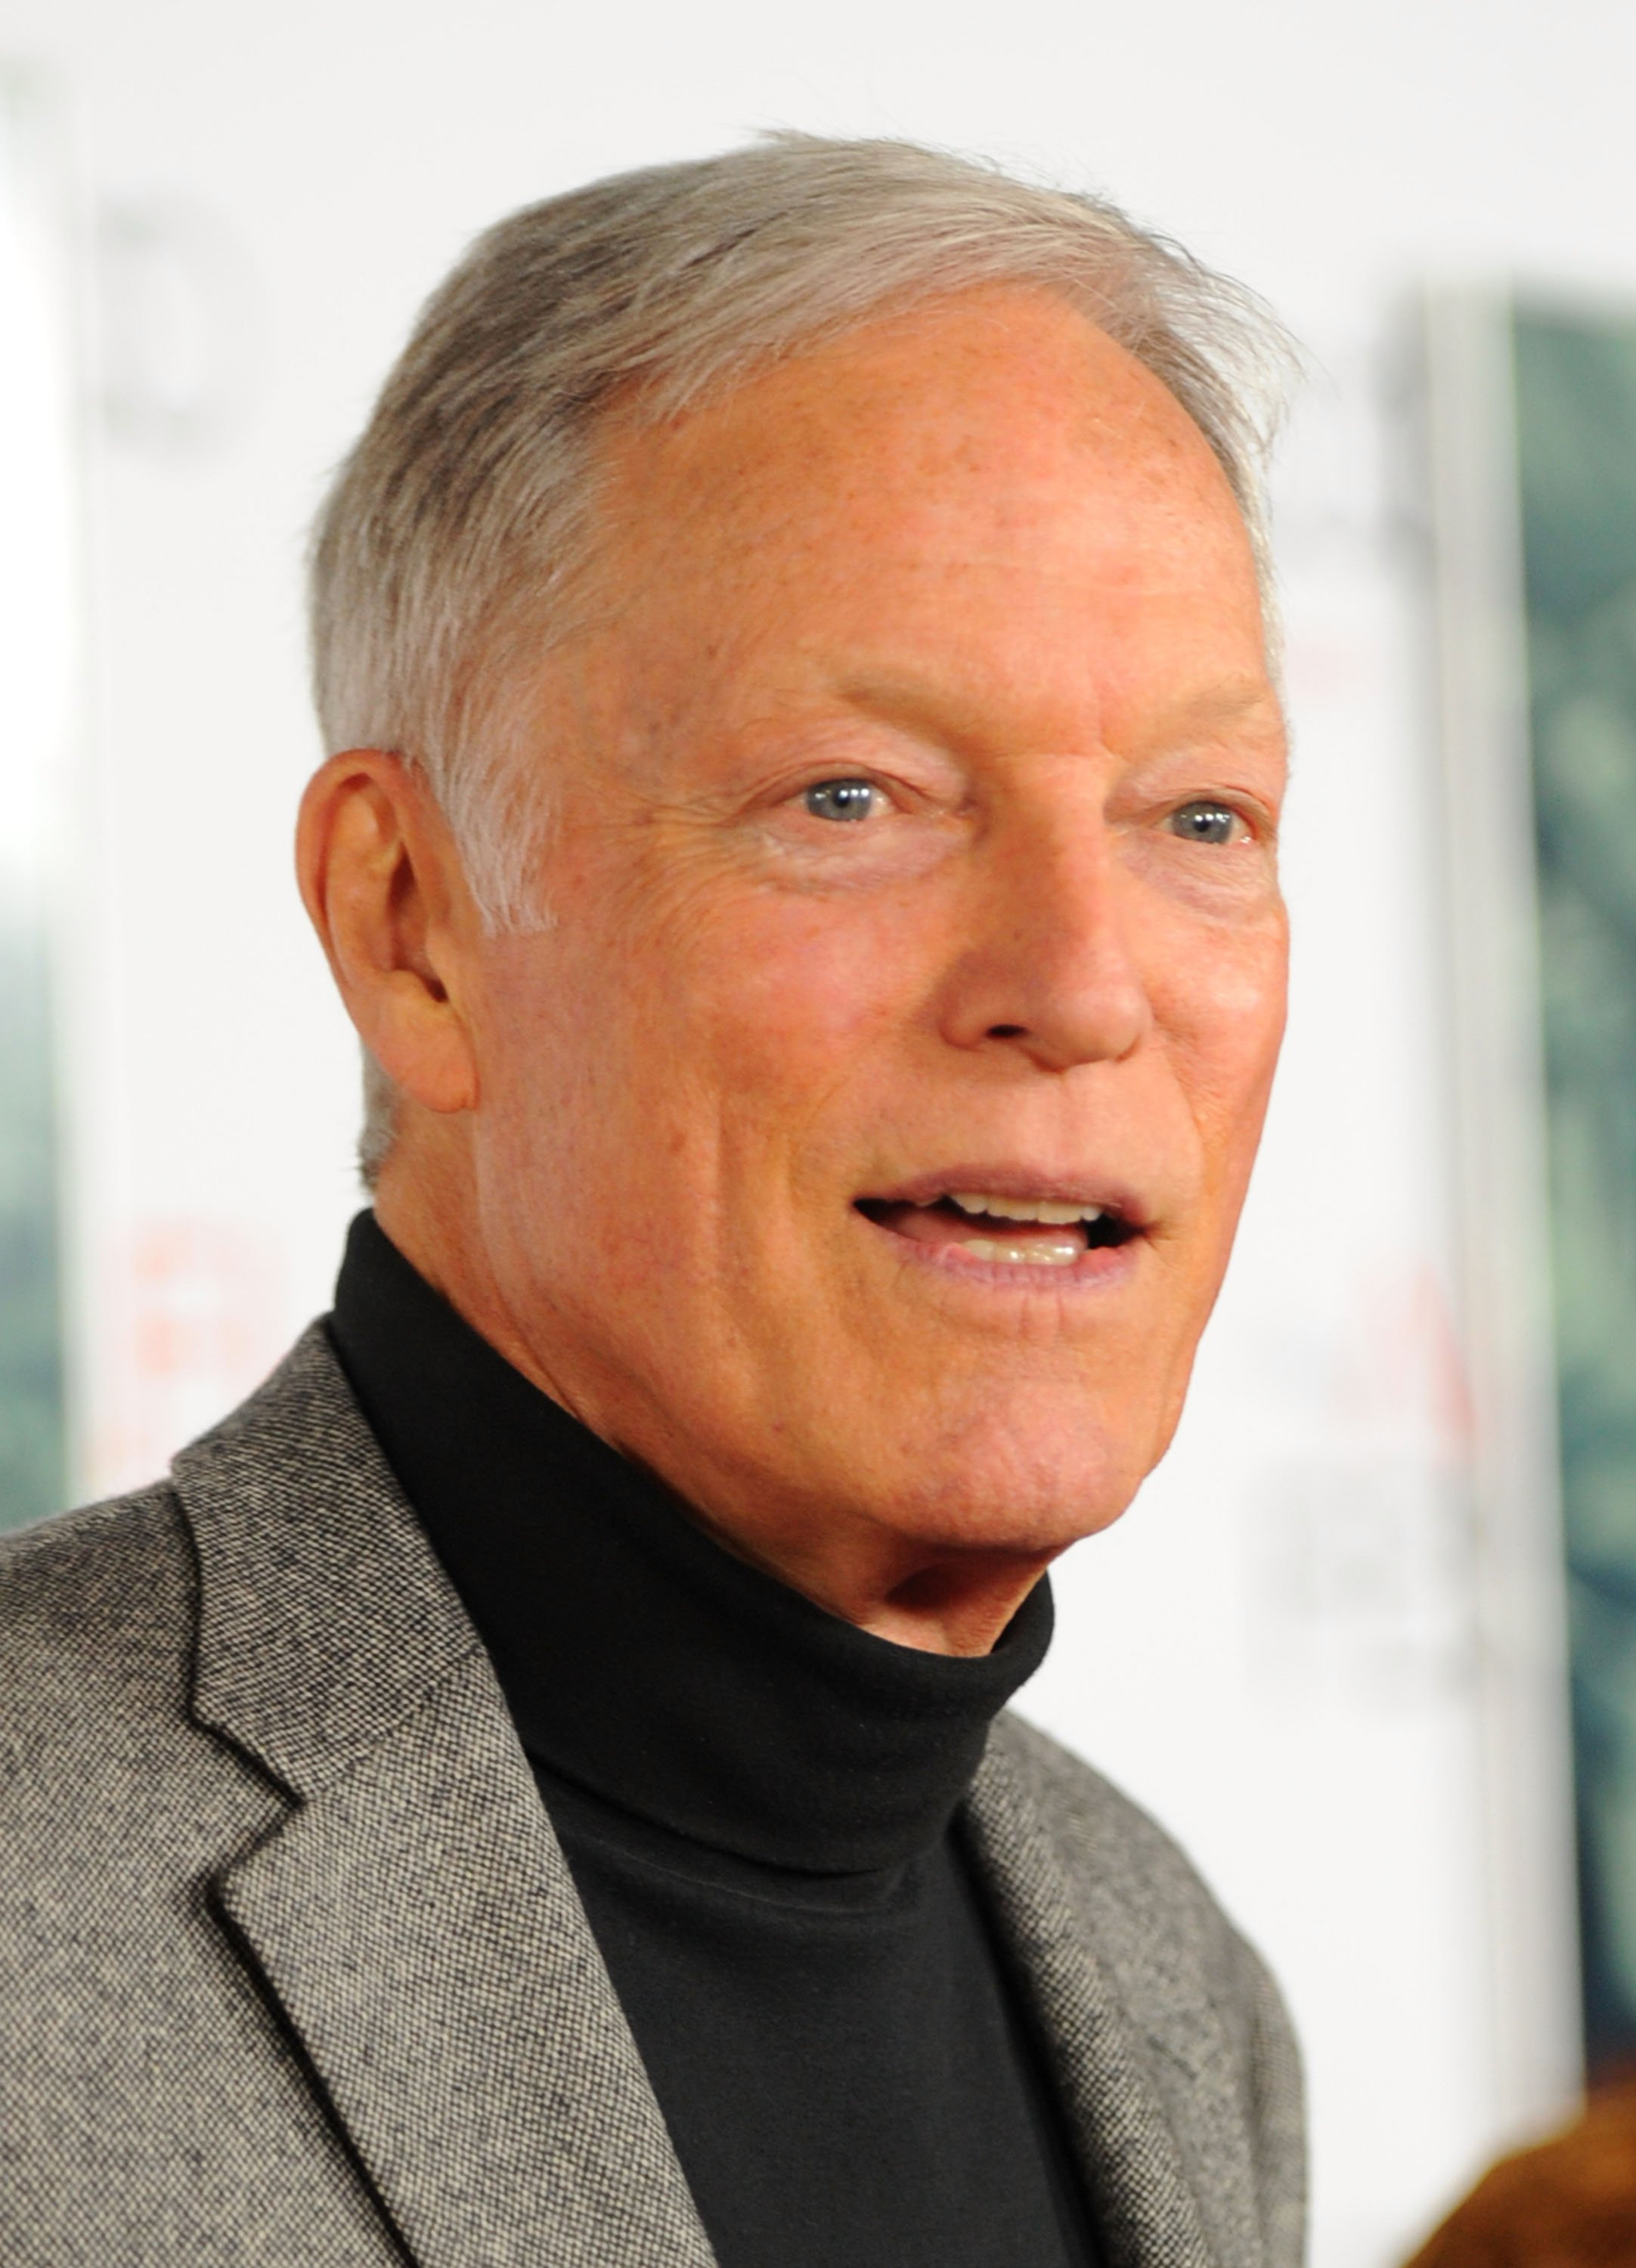 Richard Chamberlain on November 9, 2011 in Hollywood, California | Photo: Getty Images